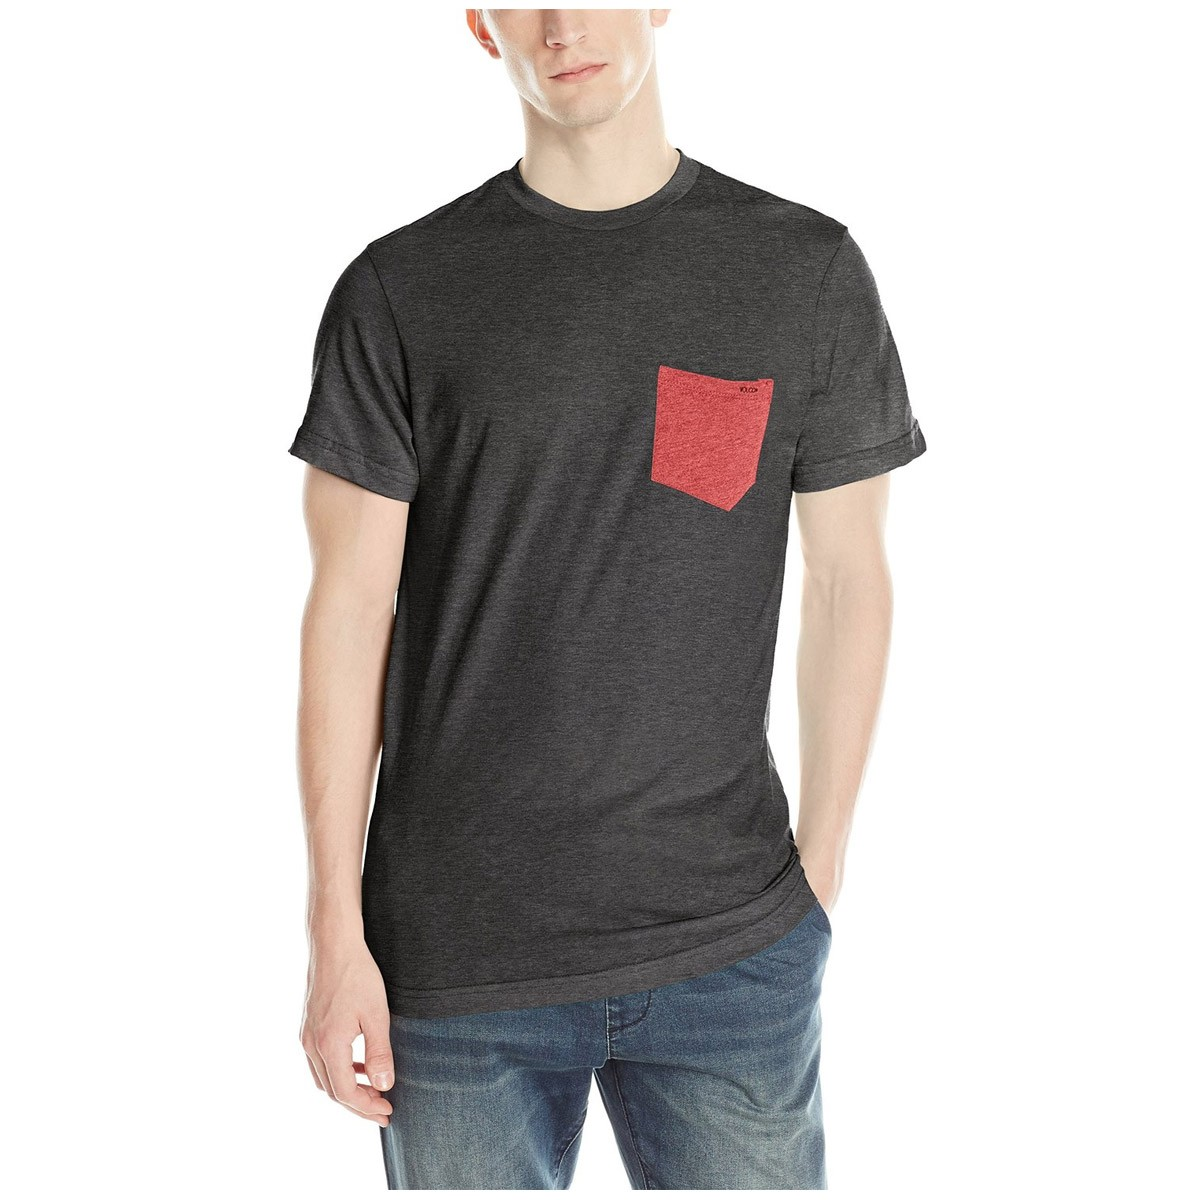 Black t shirt with pocket - Volcom Summer Switch Pocket T Shirt Heather Black